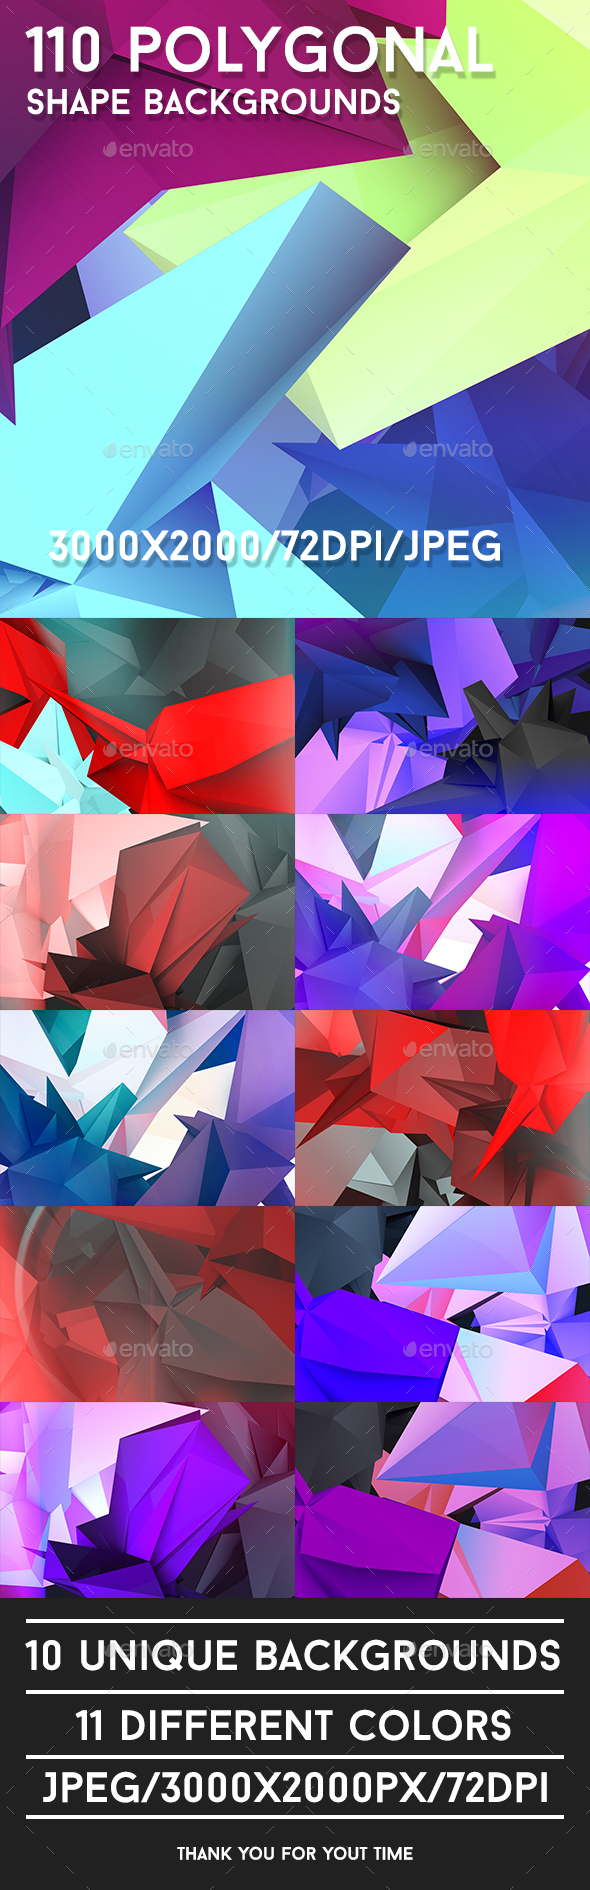 110 Polygonal Shape Backgrounds - Abstract Backgrounds